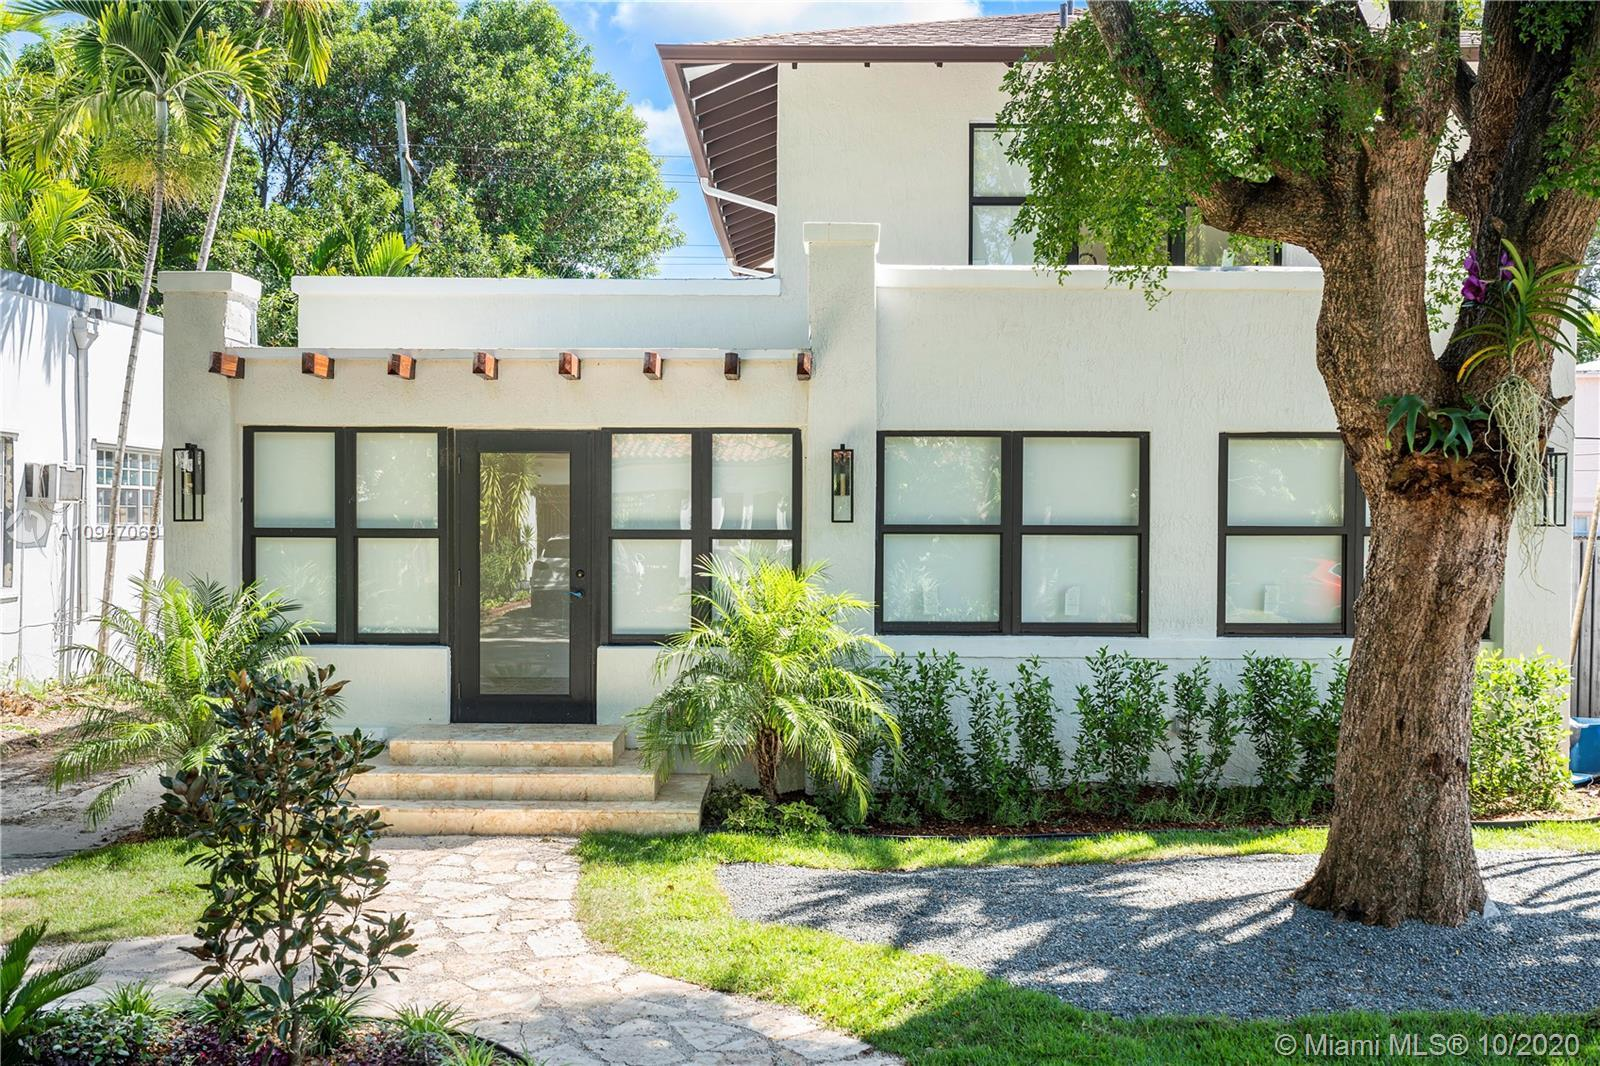 Nestled in a tree lined street, just a short walk from Design District's haute culture of fashion, f